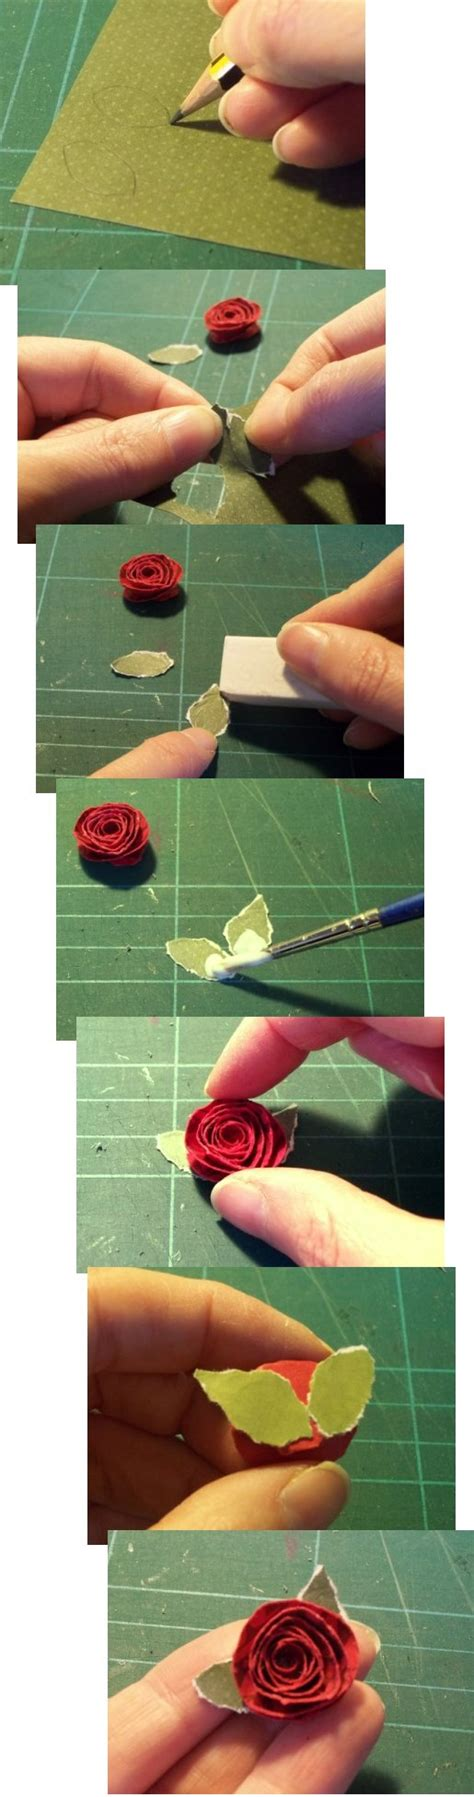 What Can I Make With Paper And Glue - things to make and do paper roses